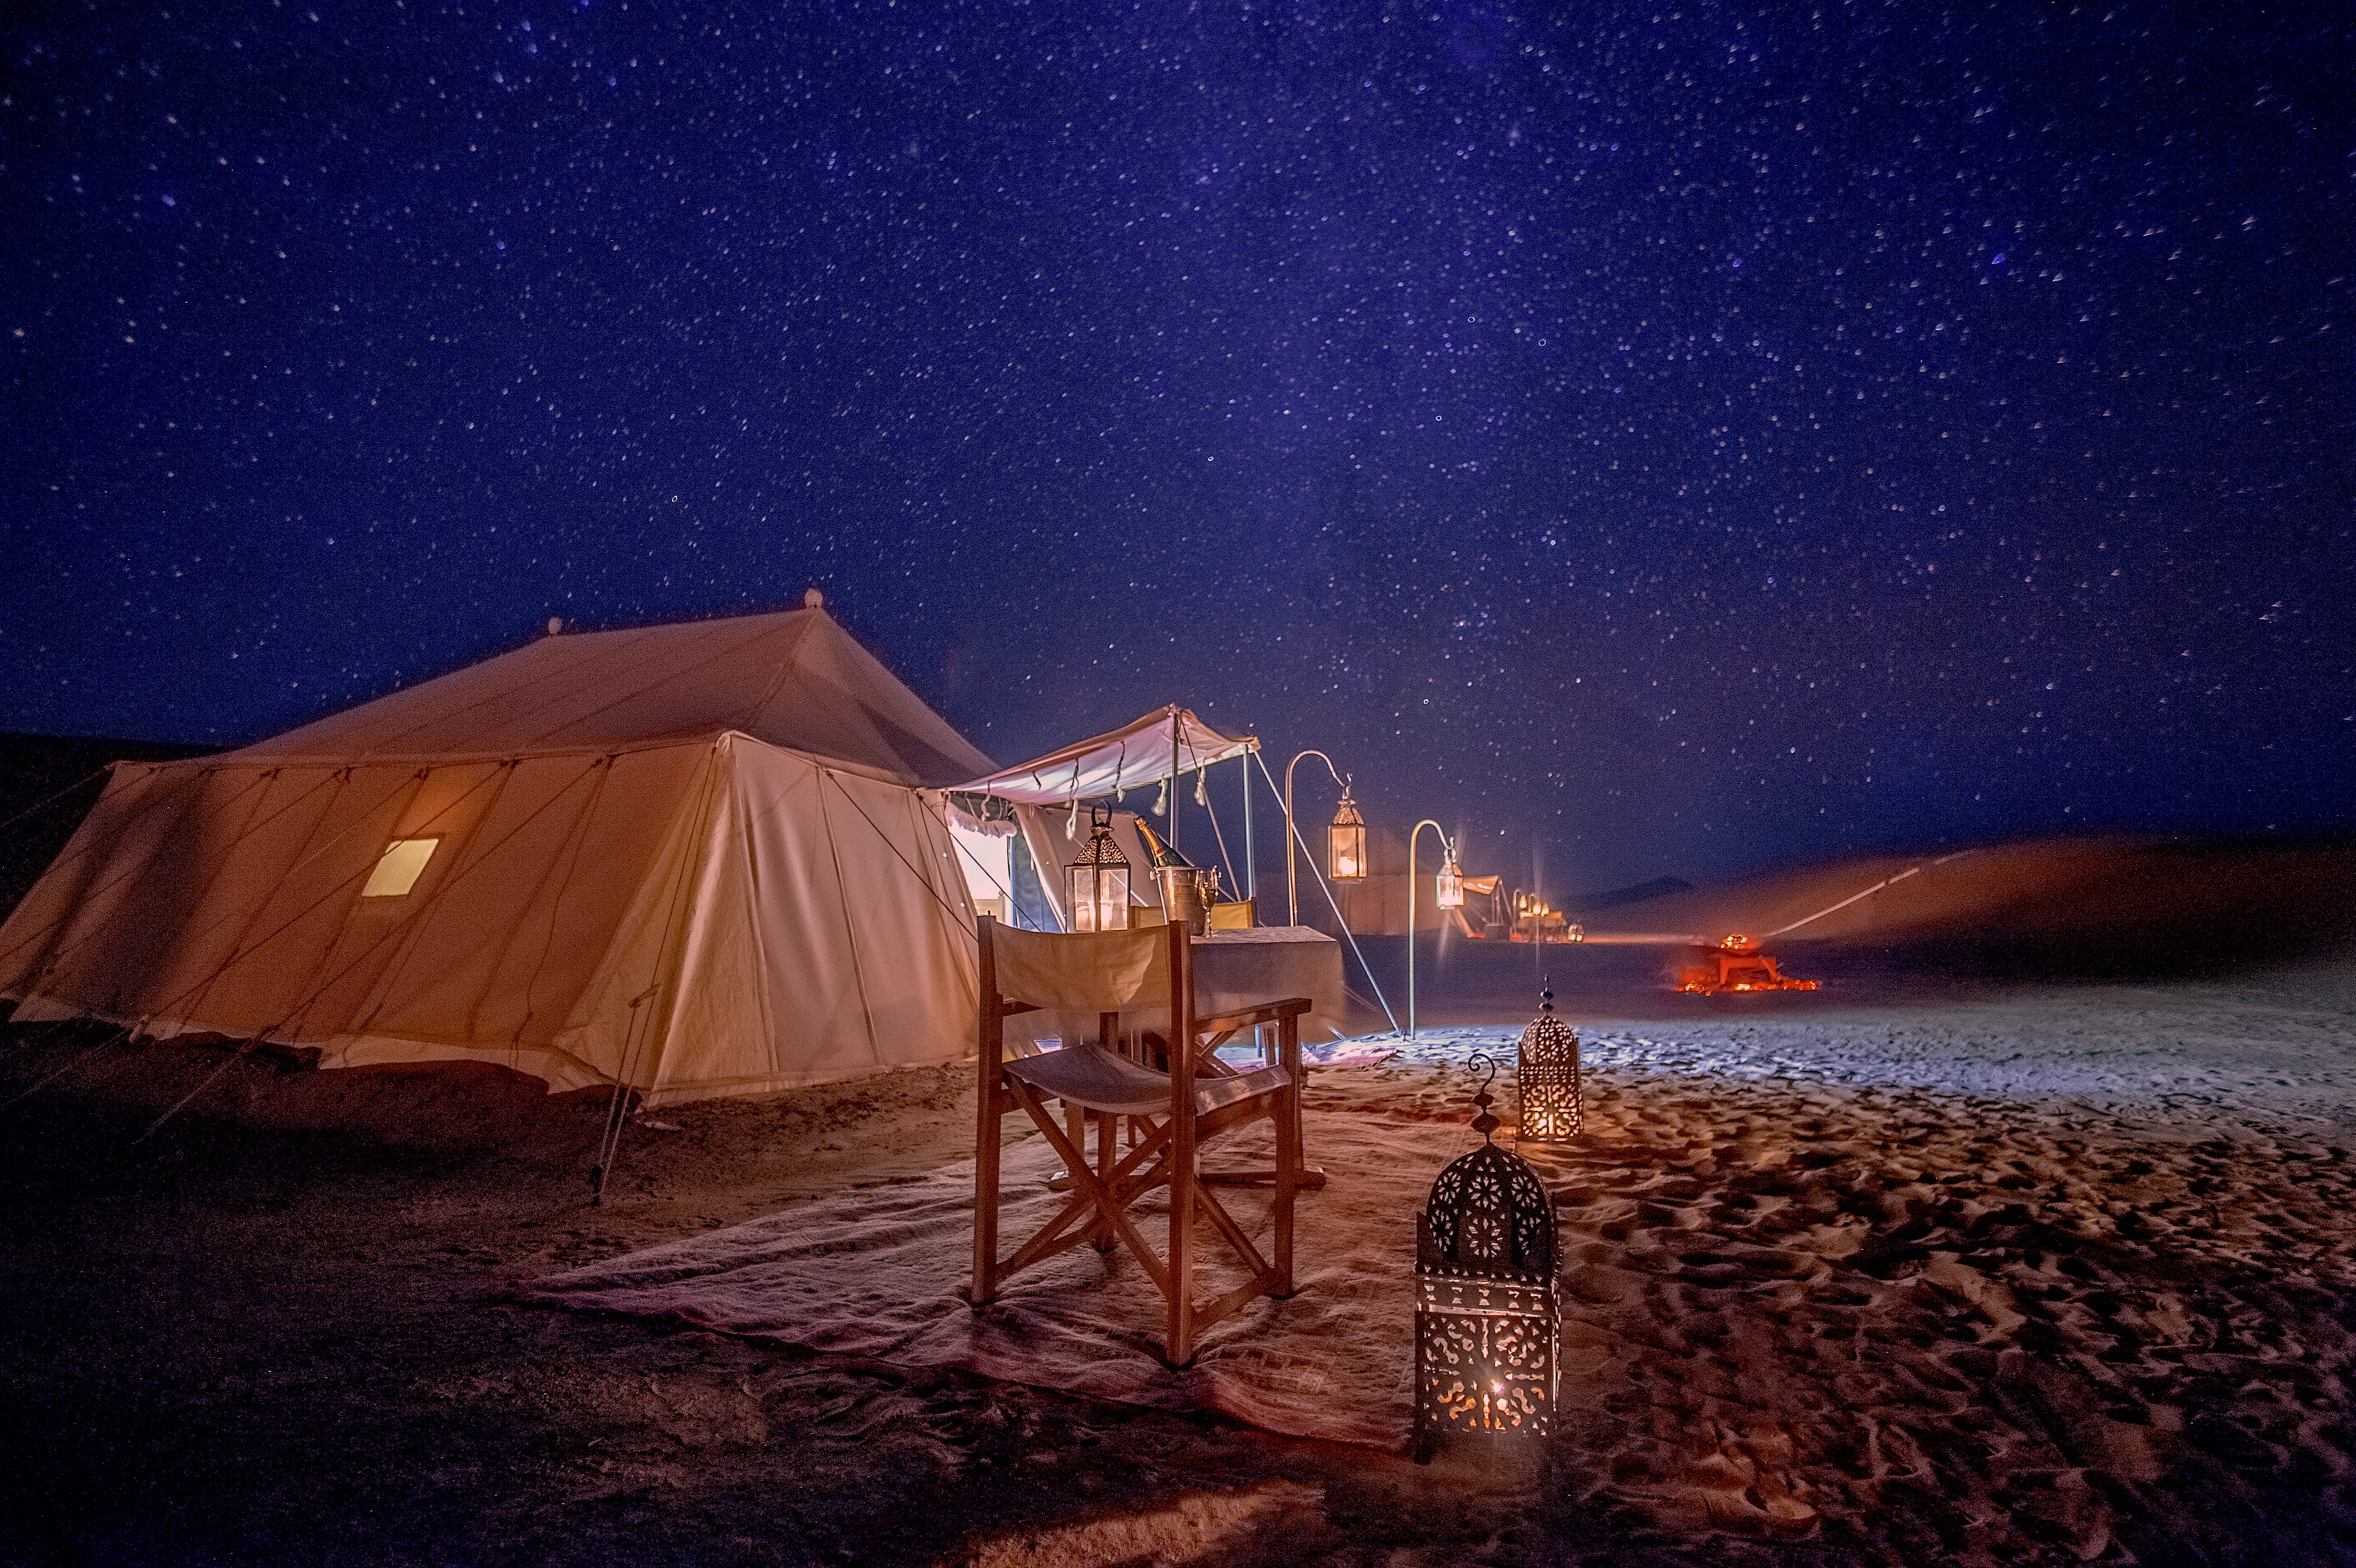 Glamping tents under starry night sky somewhere in the wilderness.